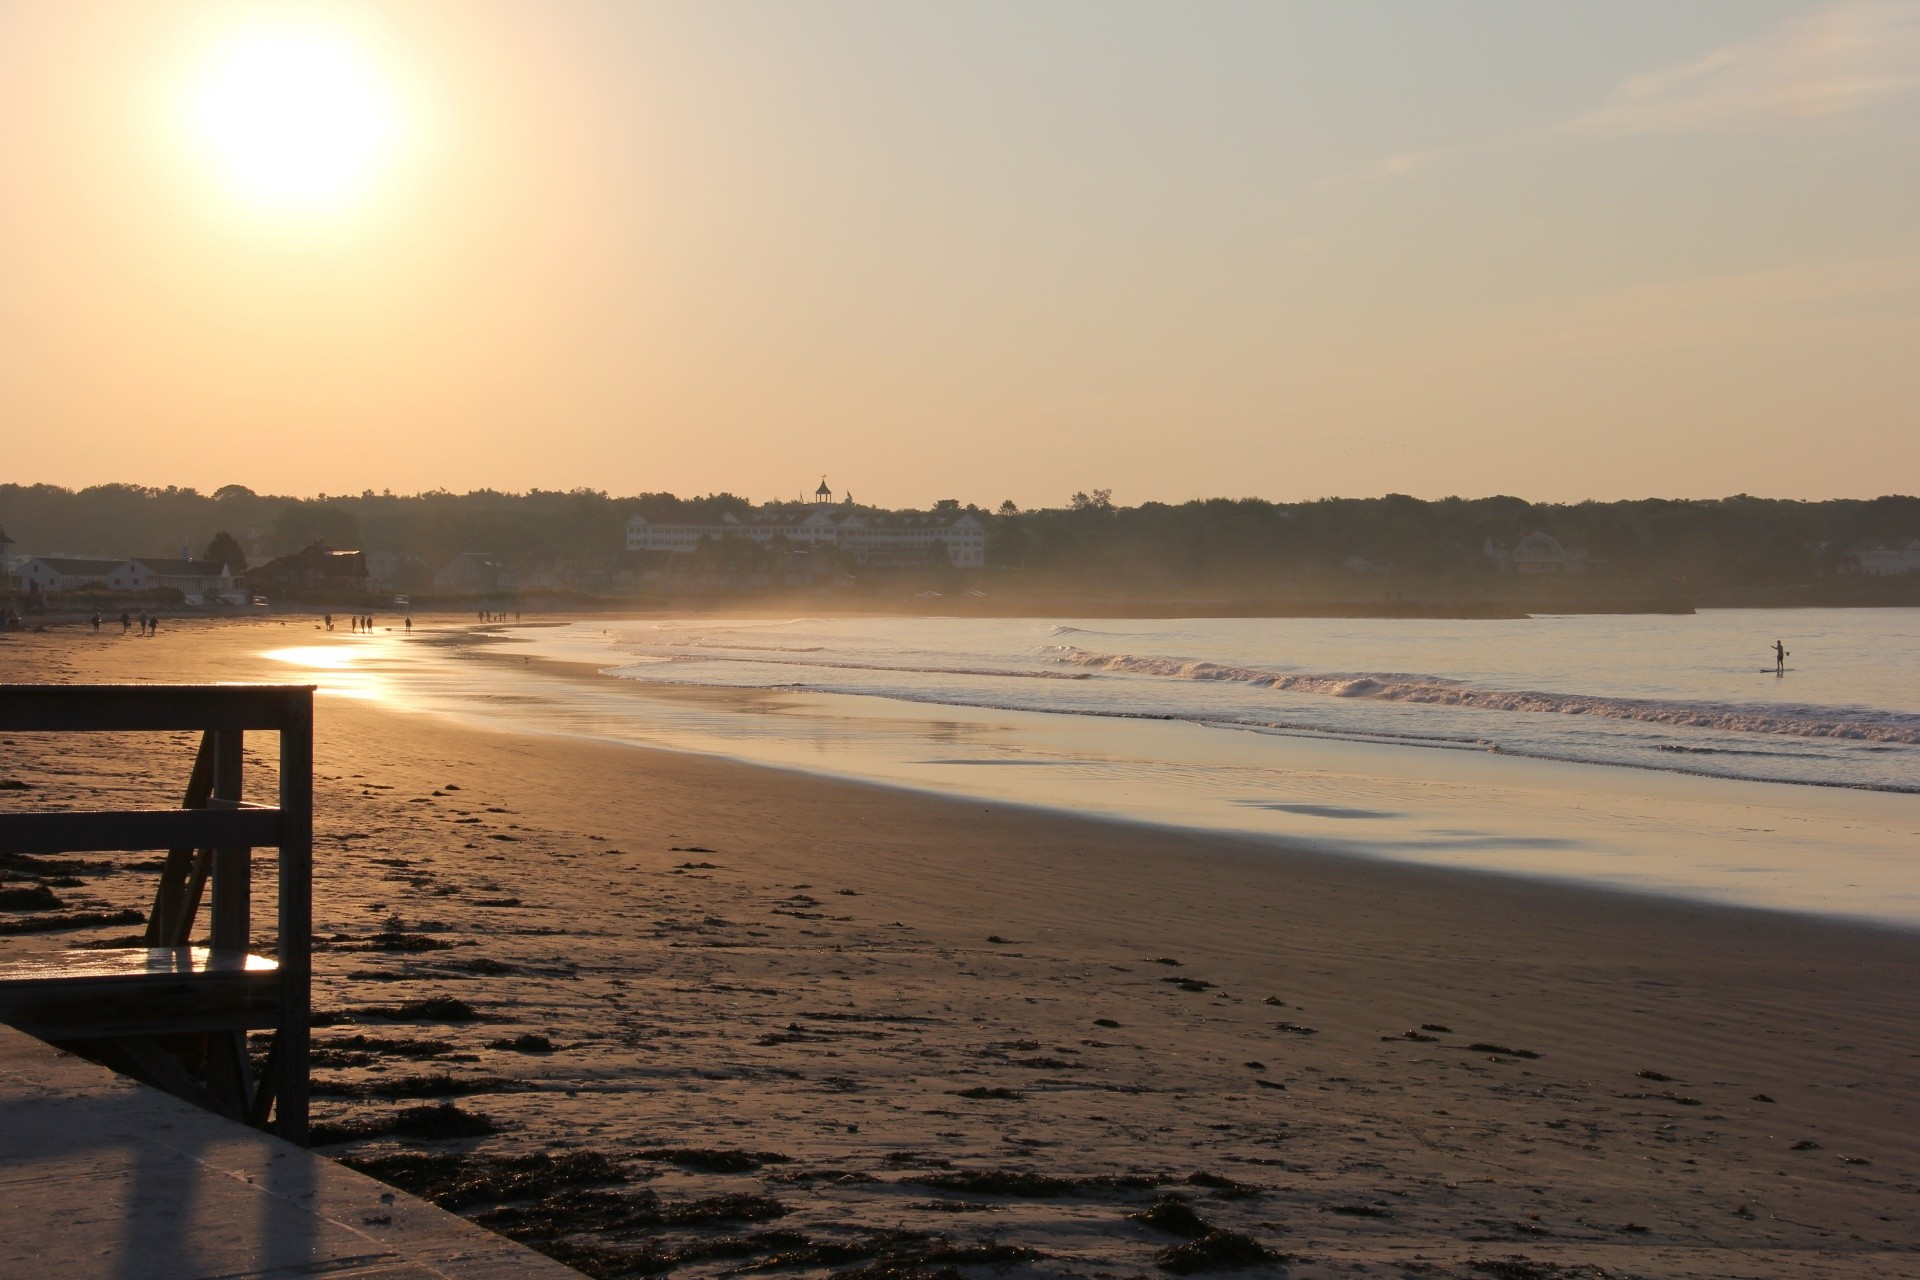 GOOCH's photo of Kennebunk Beach